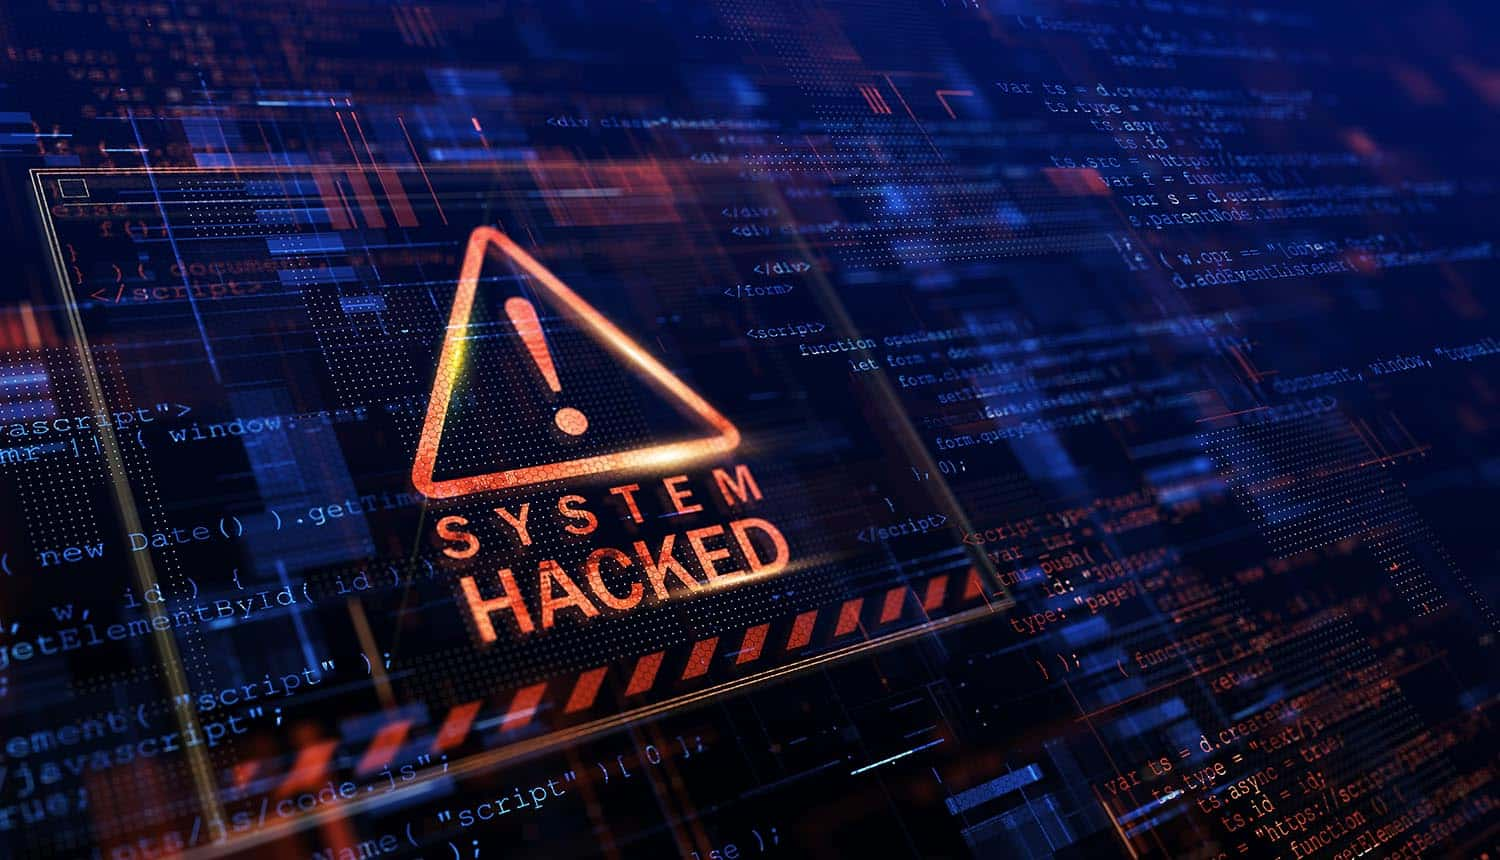 Warning of a system hacked showing ransomware recovery costs of ransomware attack